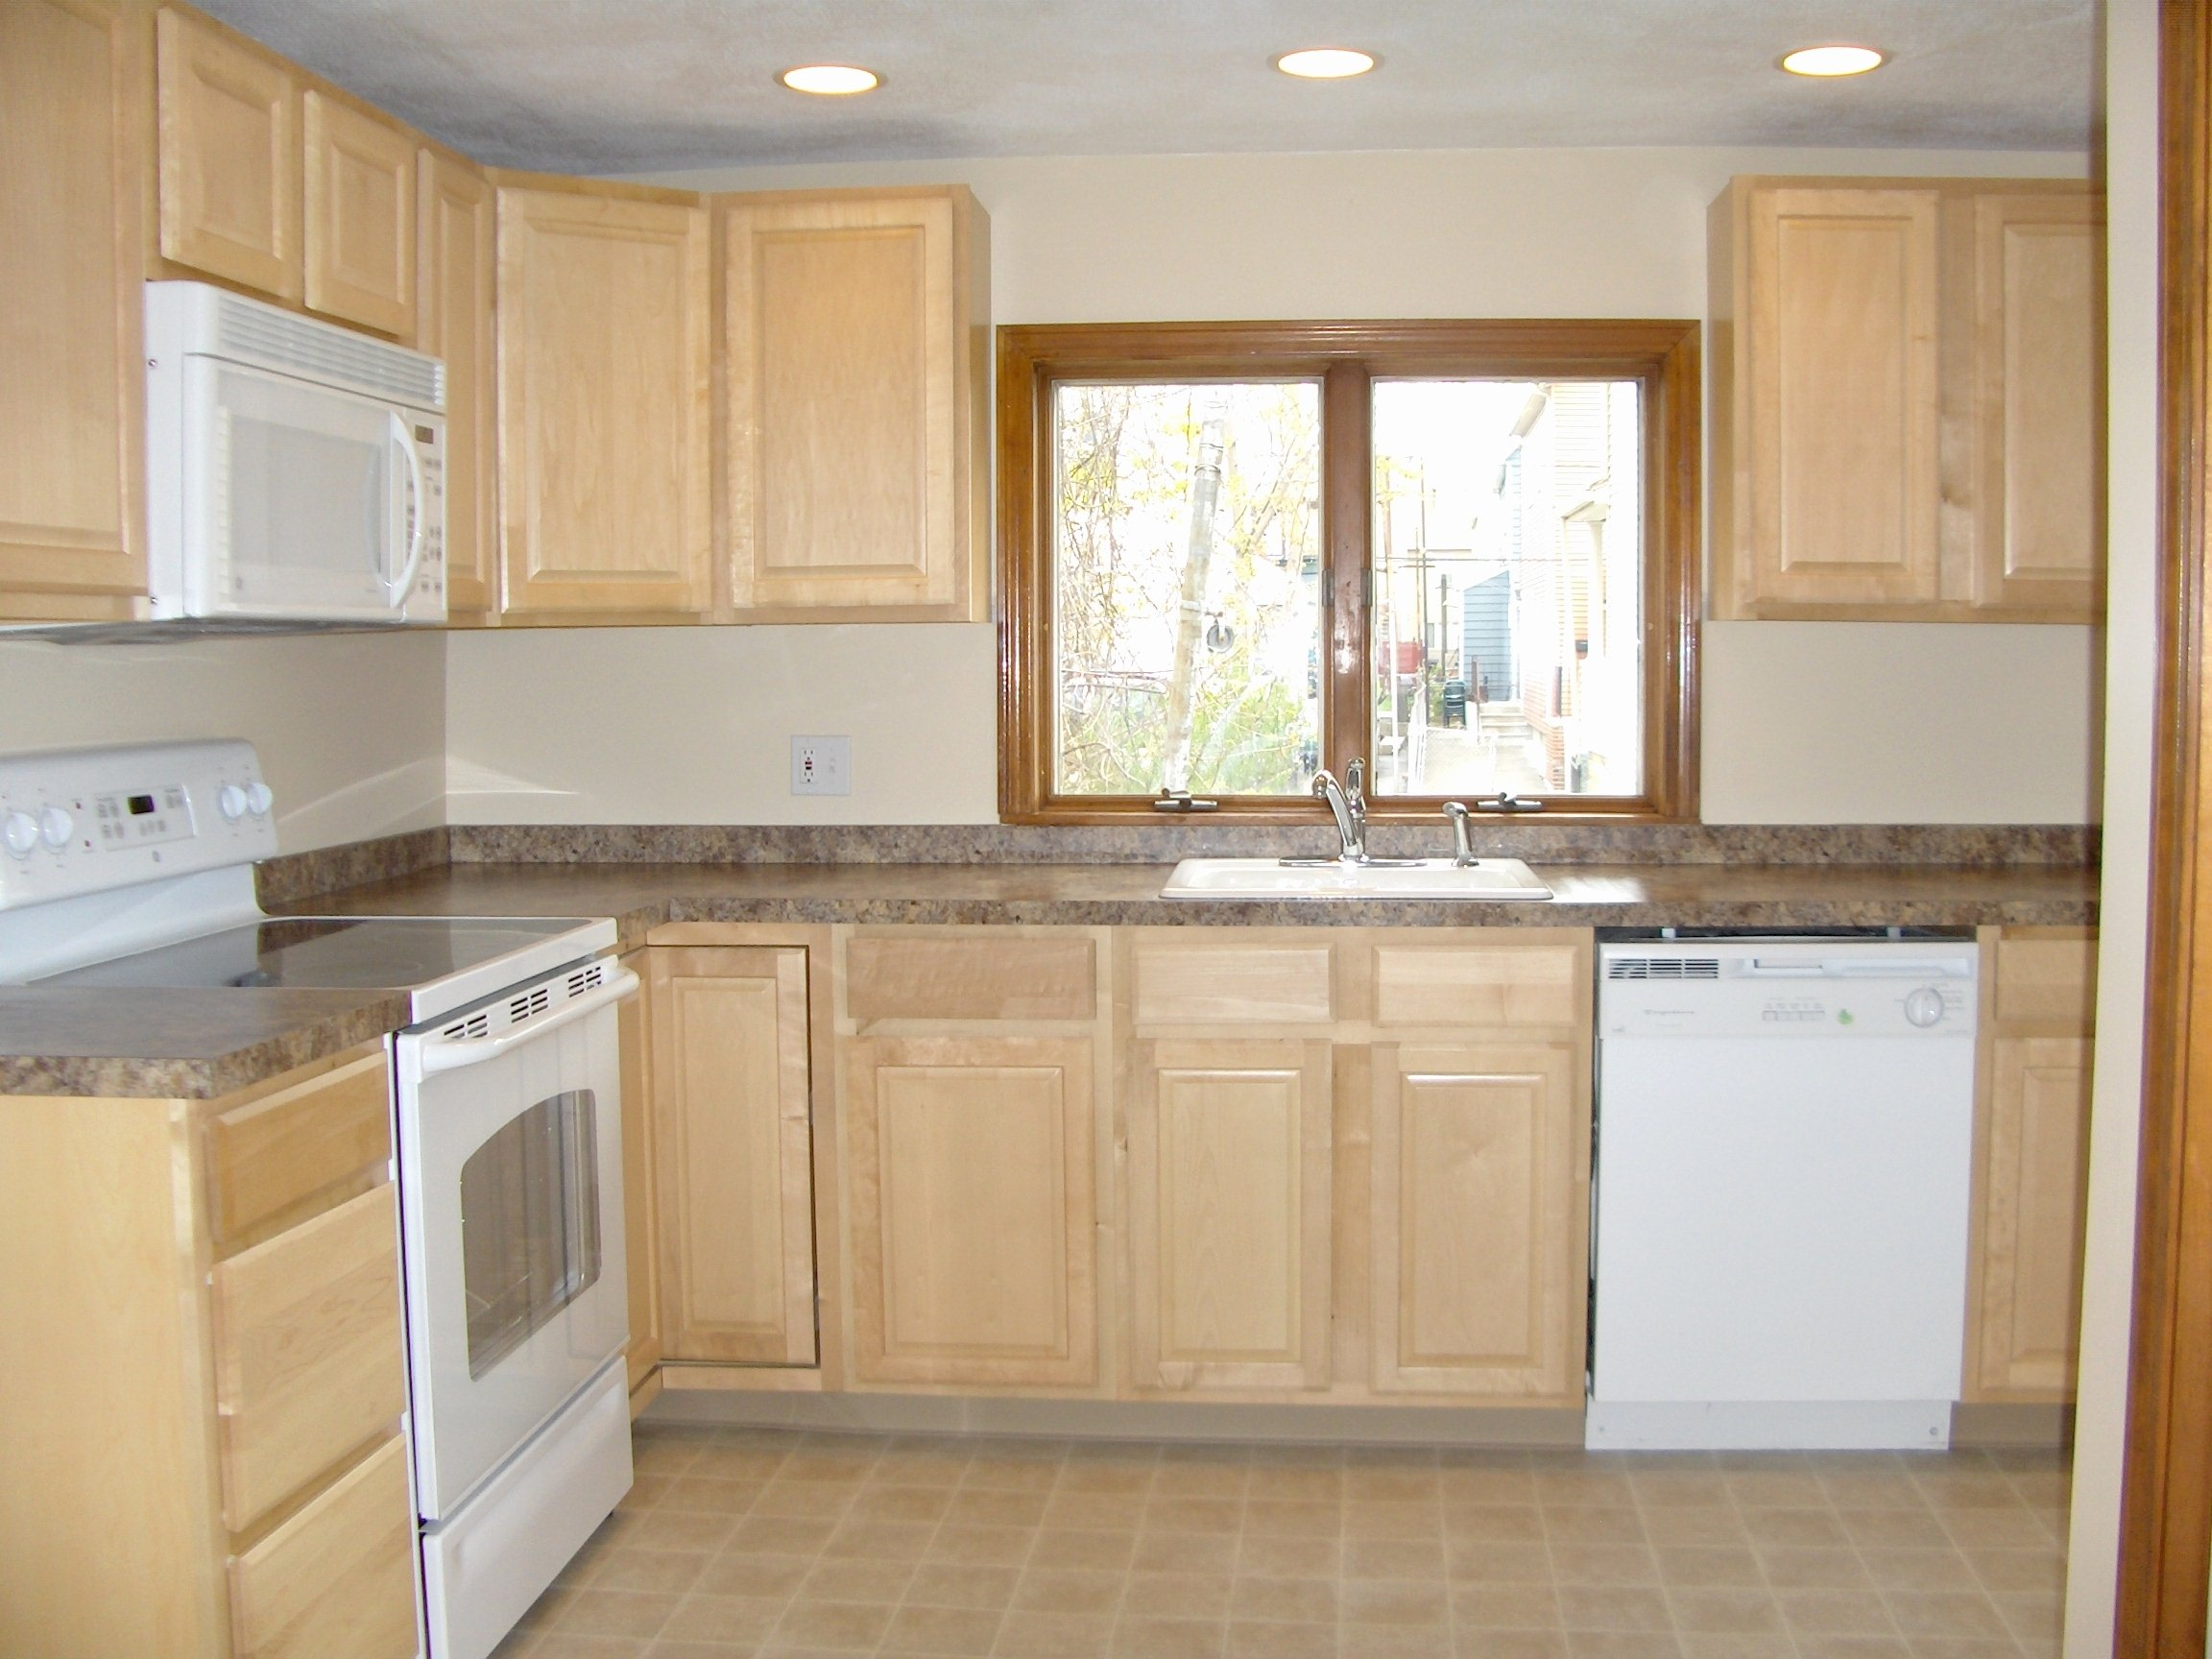 10 Best Kitchen Remodeling Ideas On A Budget luxury remodeling kitchen ideas on a budget kitchen ideas 2021